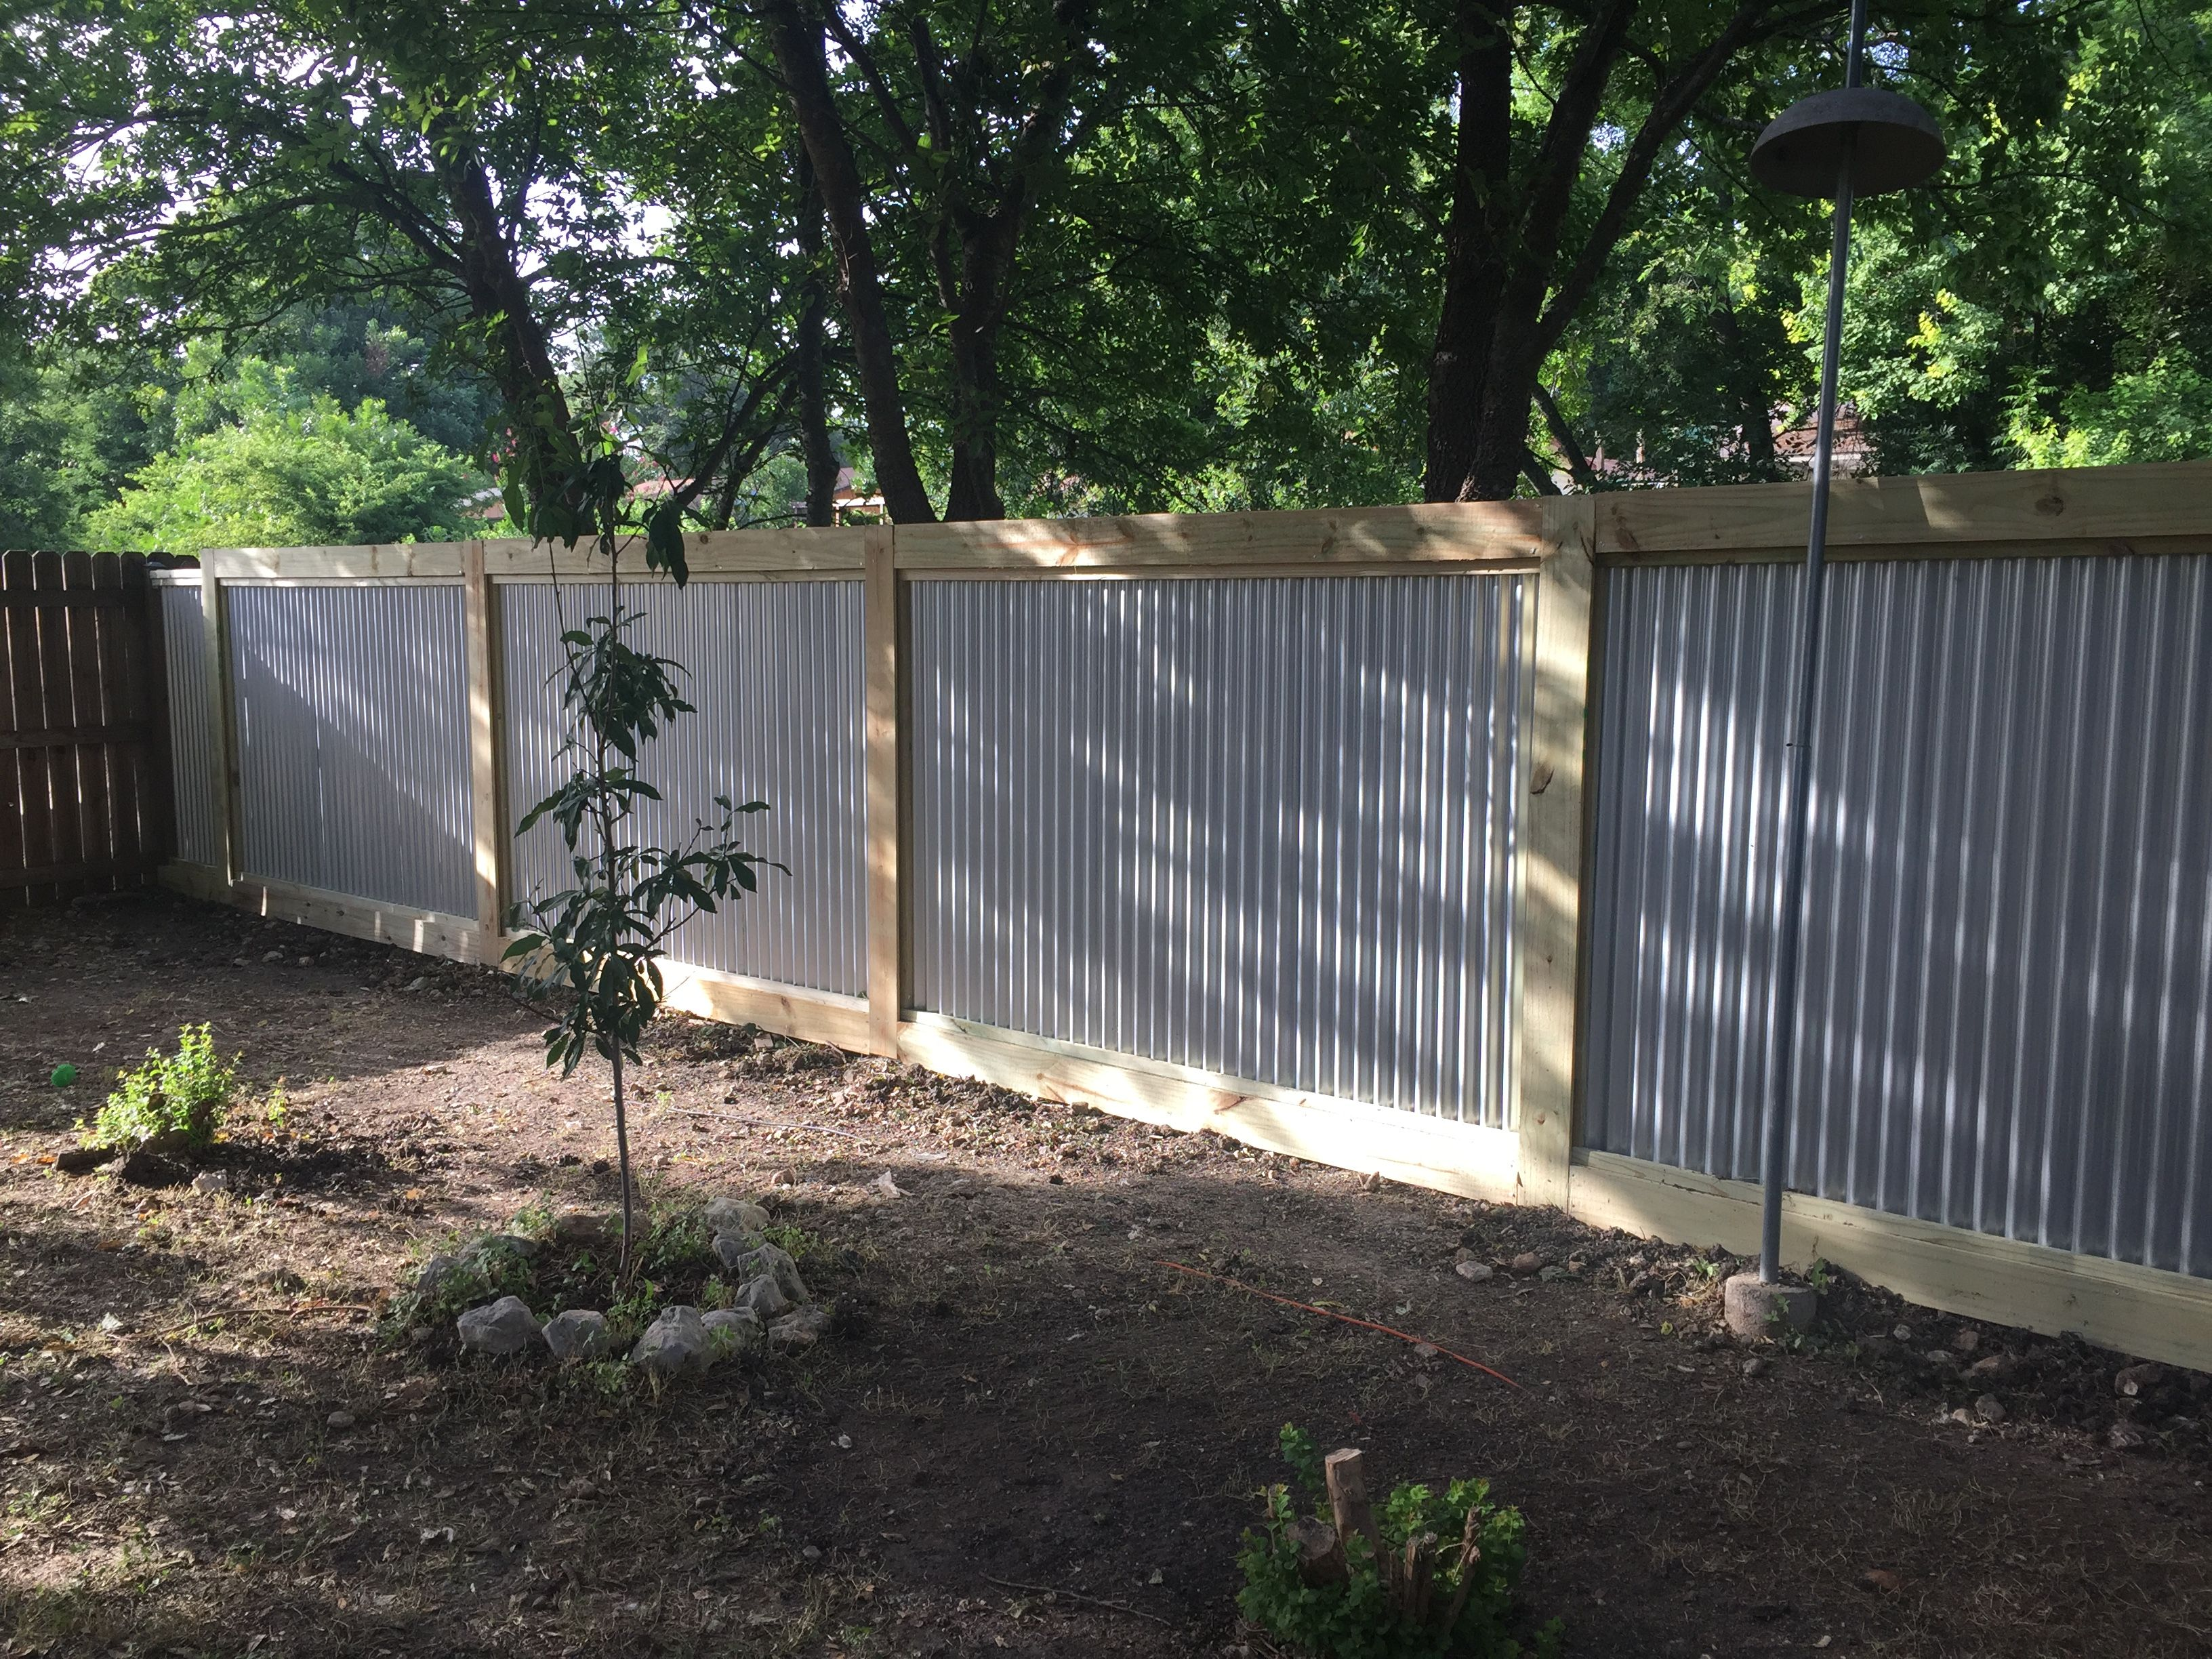 Pin By Thomas Sanders On Corrugated Metal Fence In 2018 Pinterest